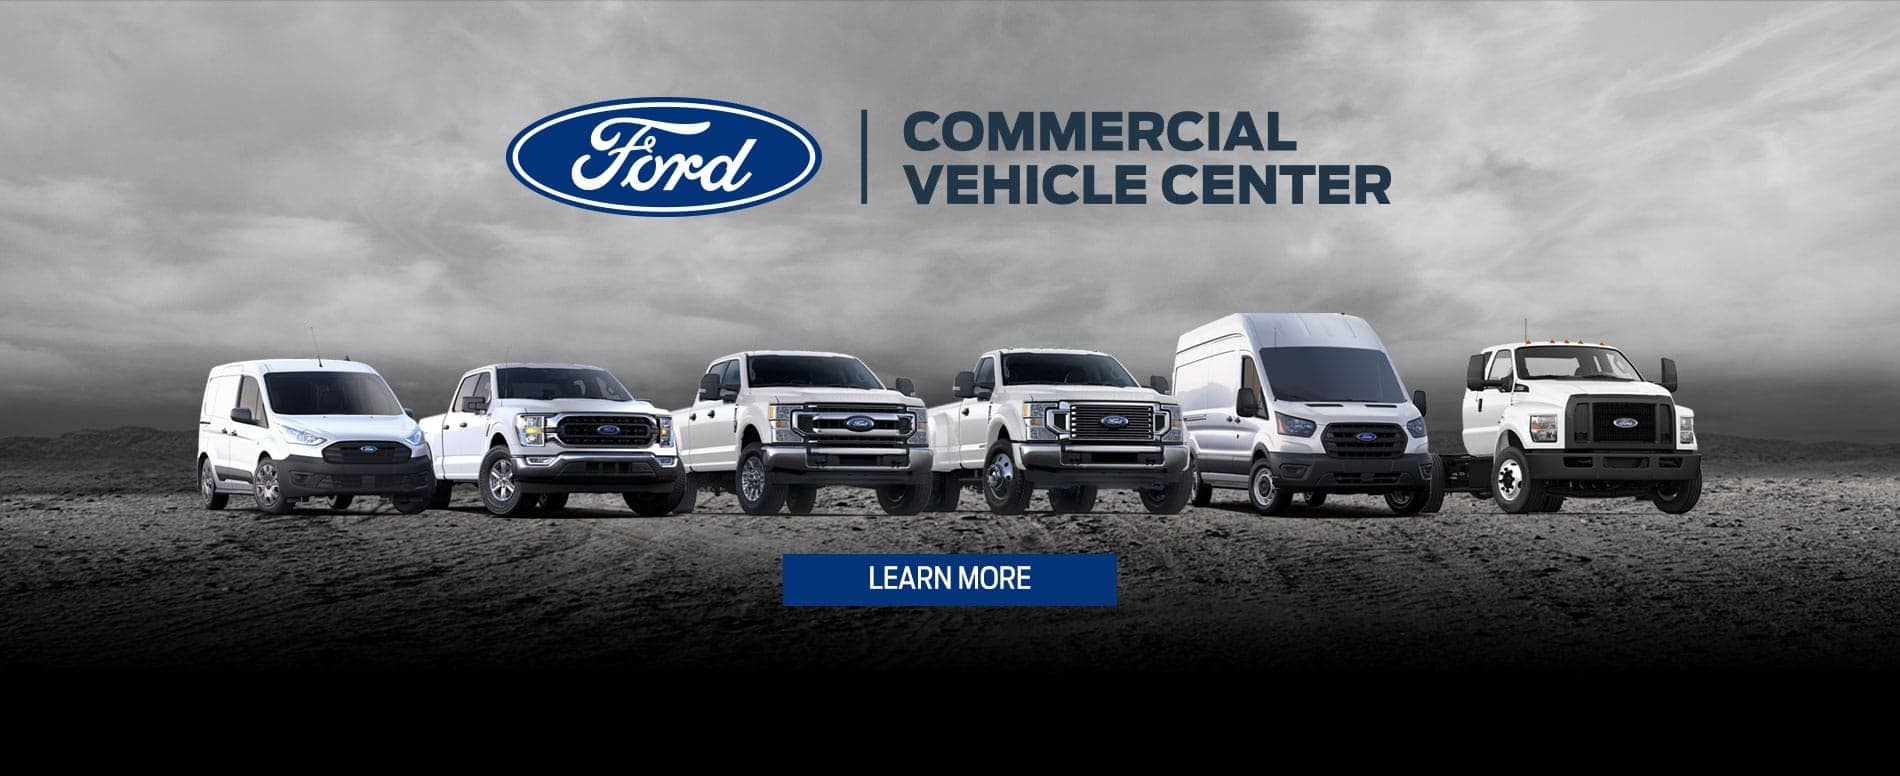 6 HFMS-Sep21-CommercialVehicles-Banner-1900x776